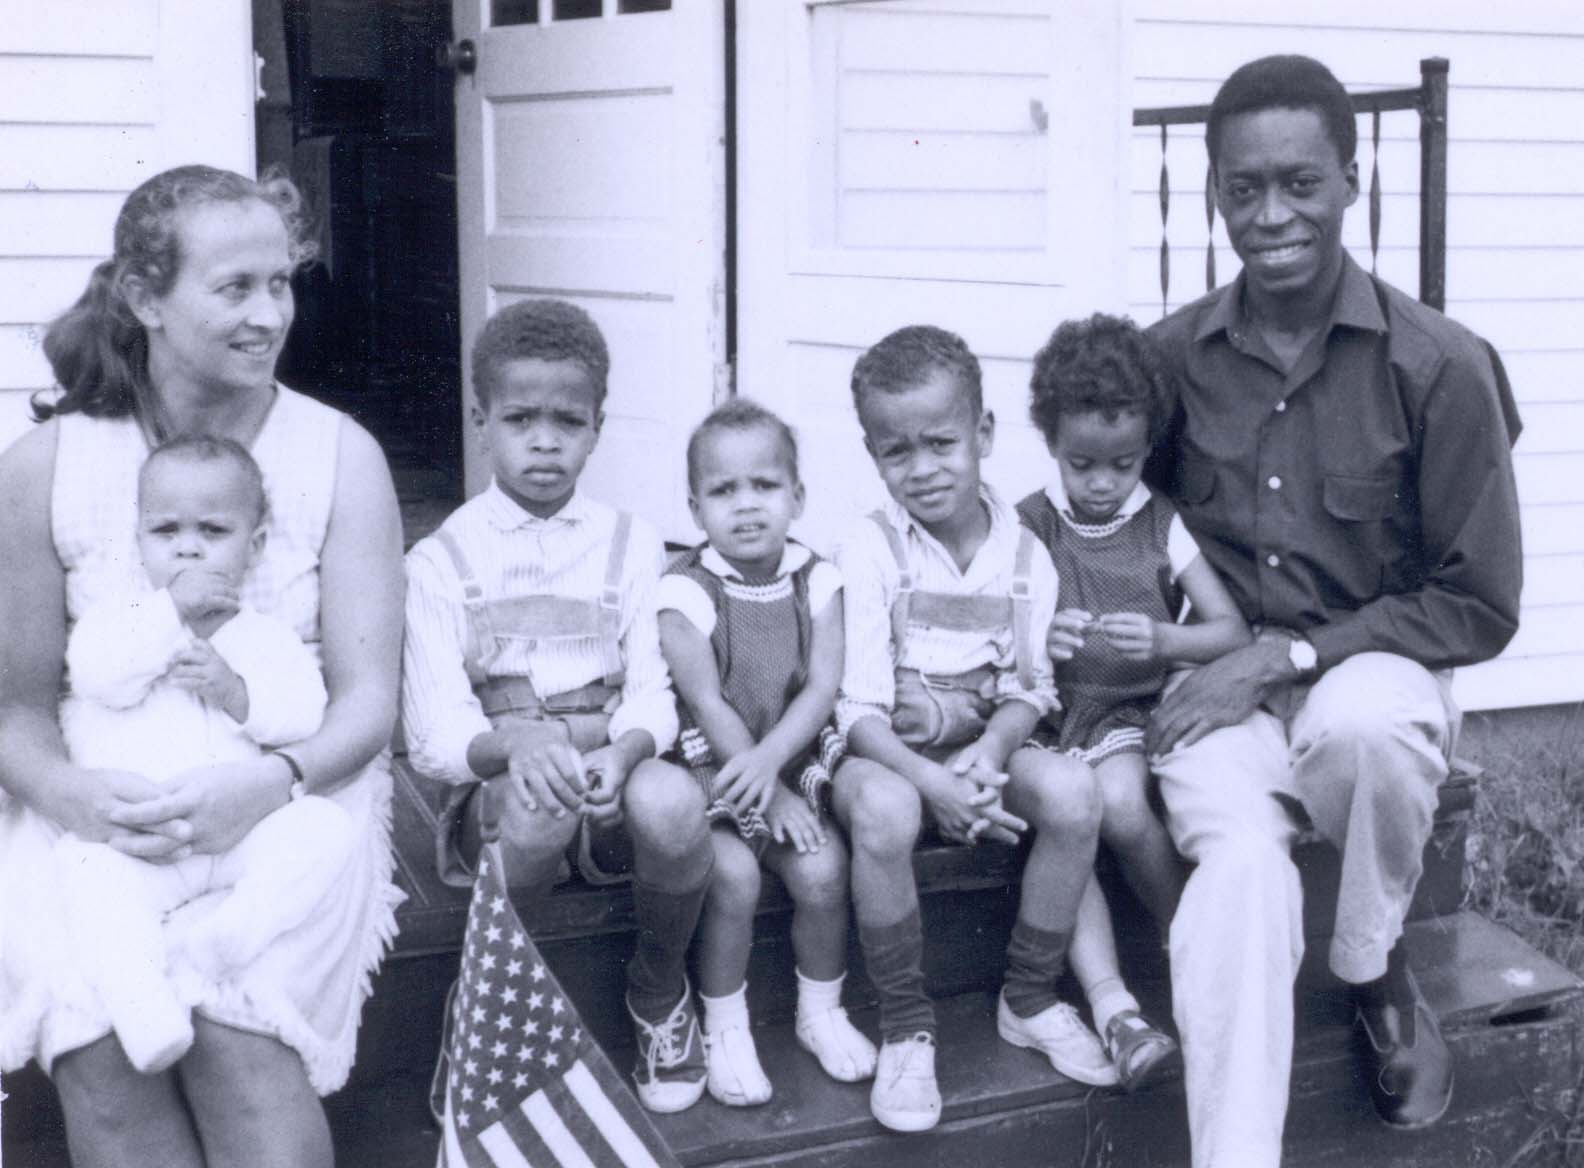 The 'J' is for Johnson. Here with my beloved parents and my four incredible sibs, 1966.